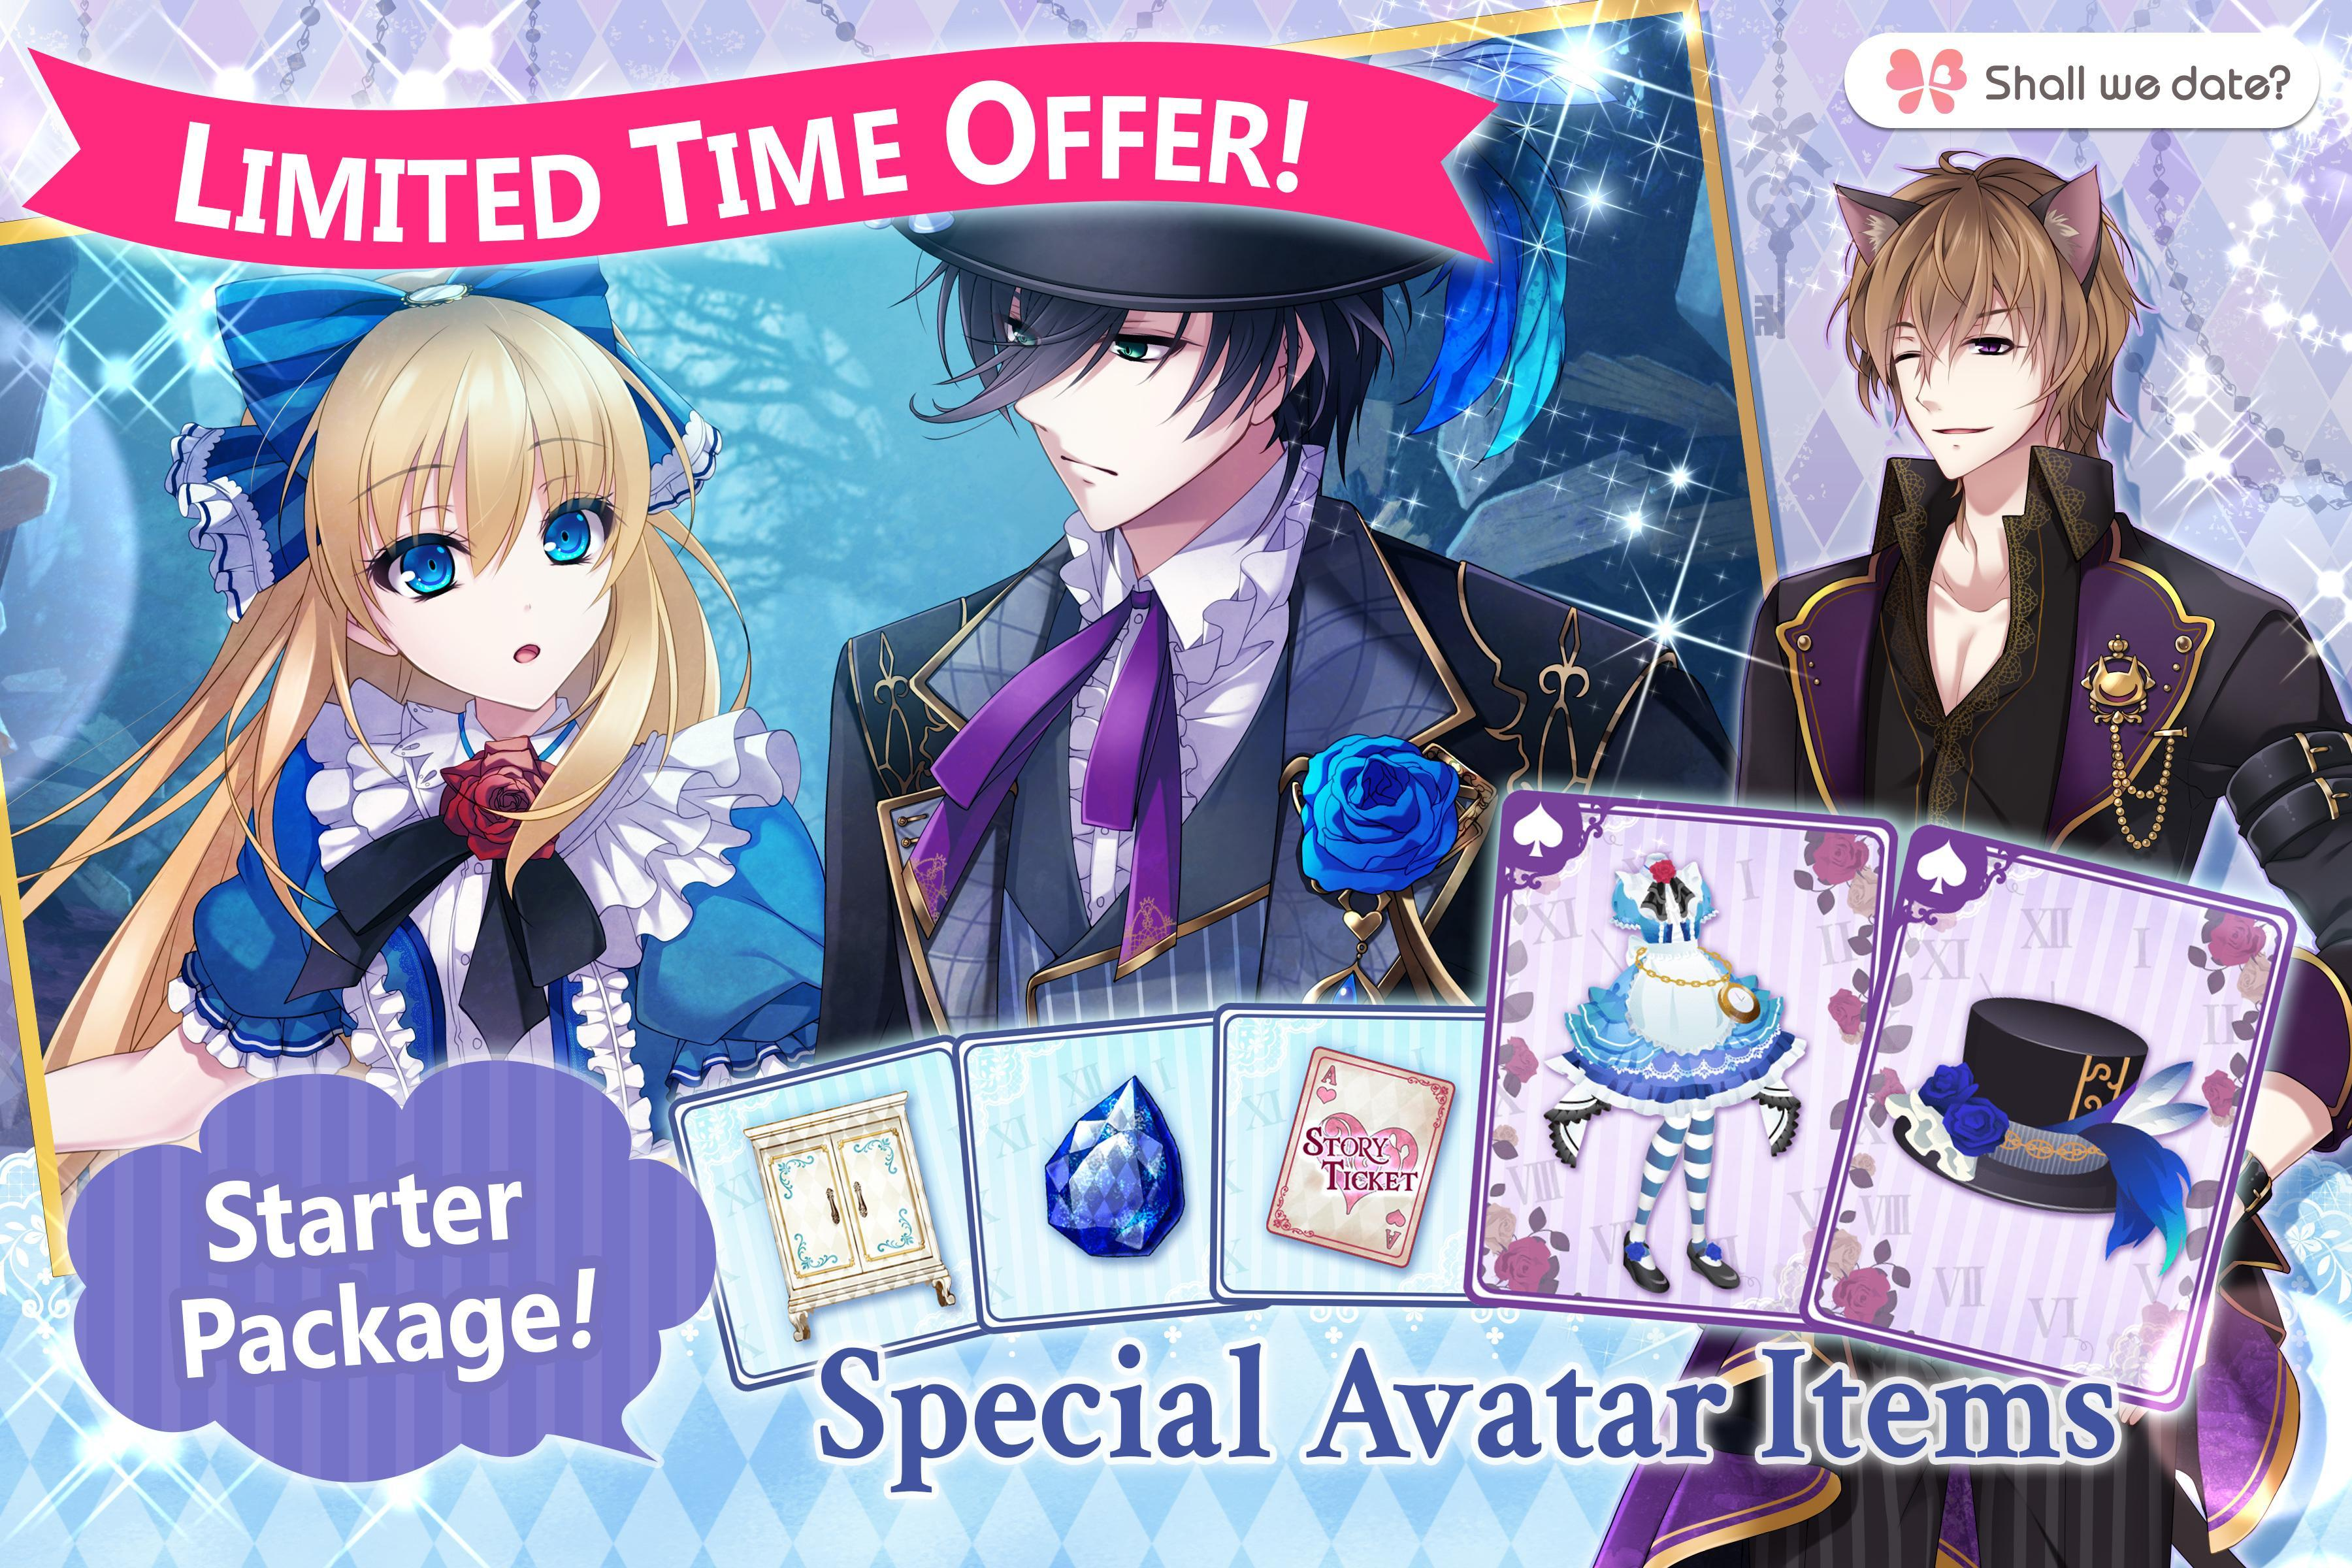 Lost Alice - otome game/dating sim #shall we date 1.5.1 Screenshot 14